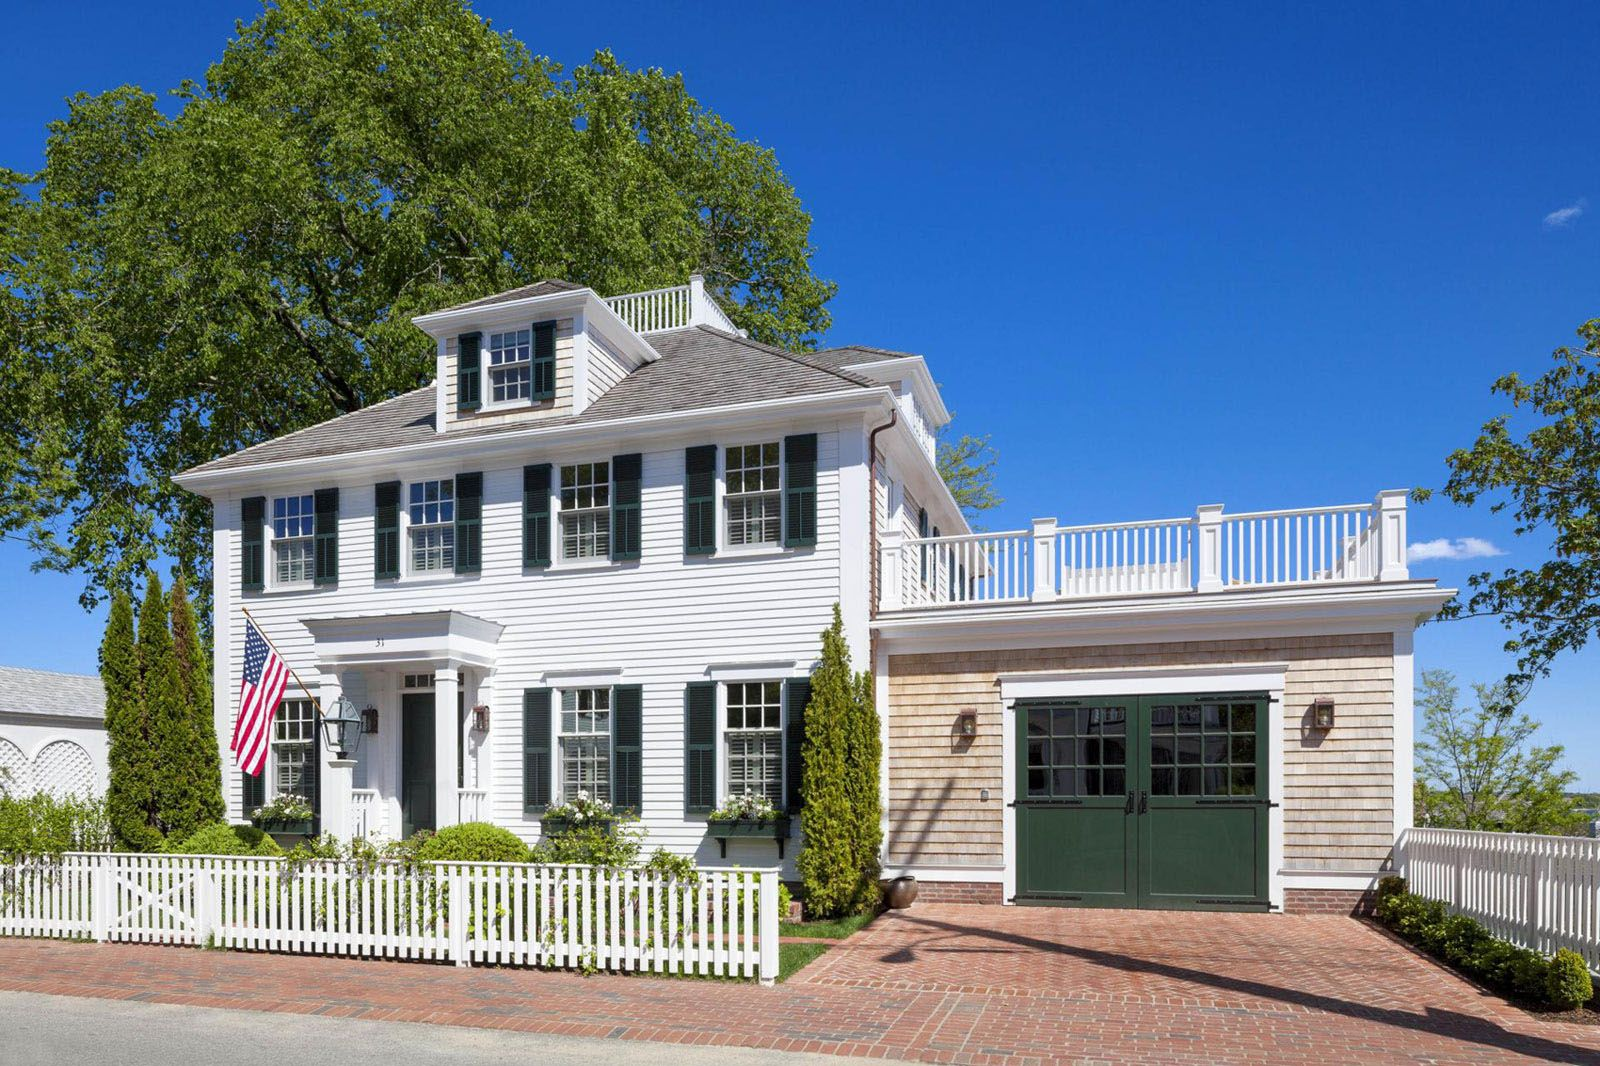 new england colonial architecture martha s vineyard edgartown